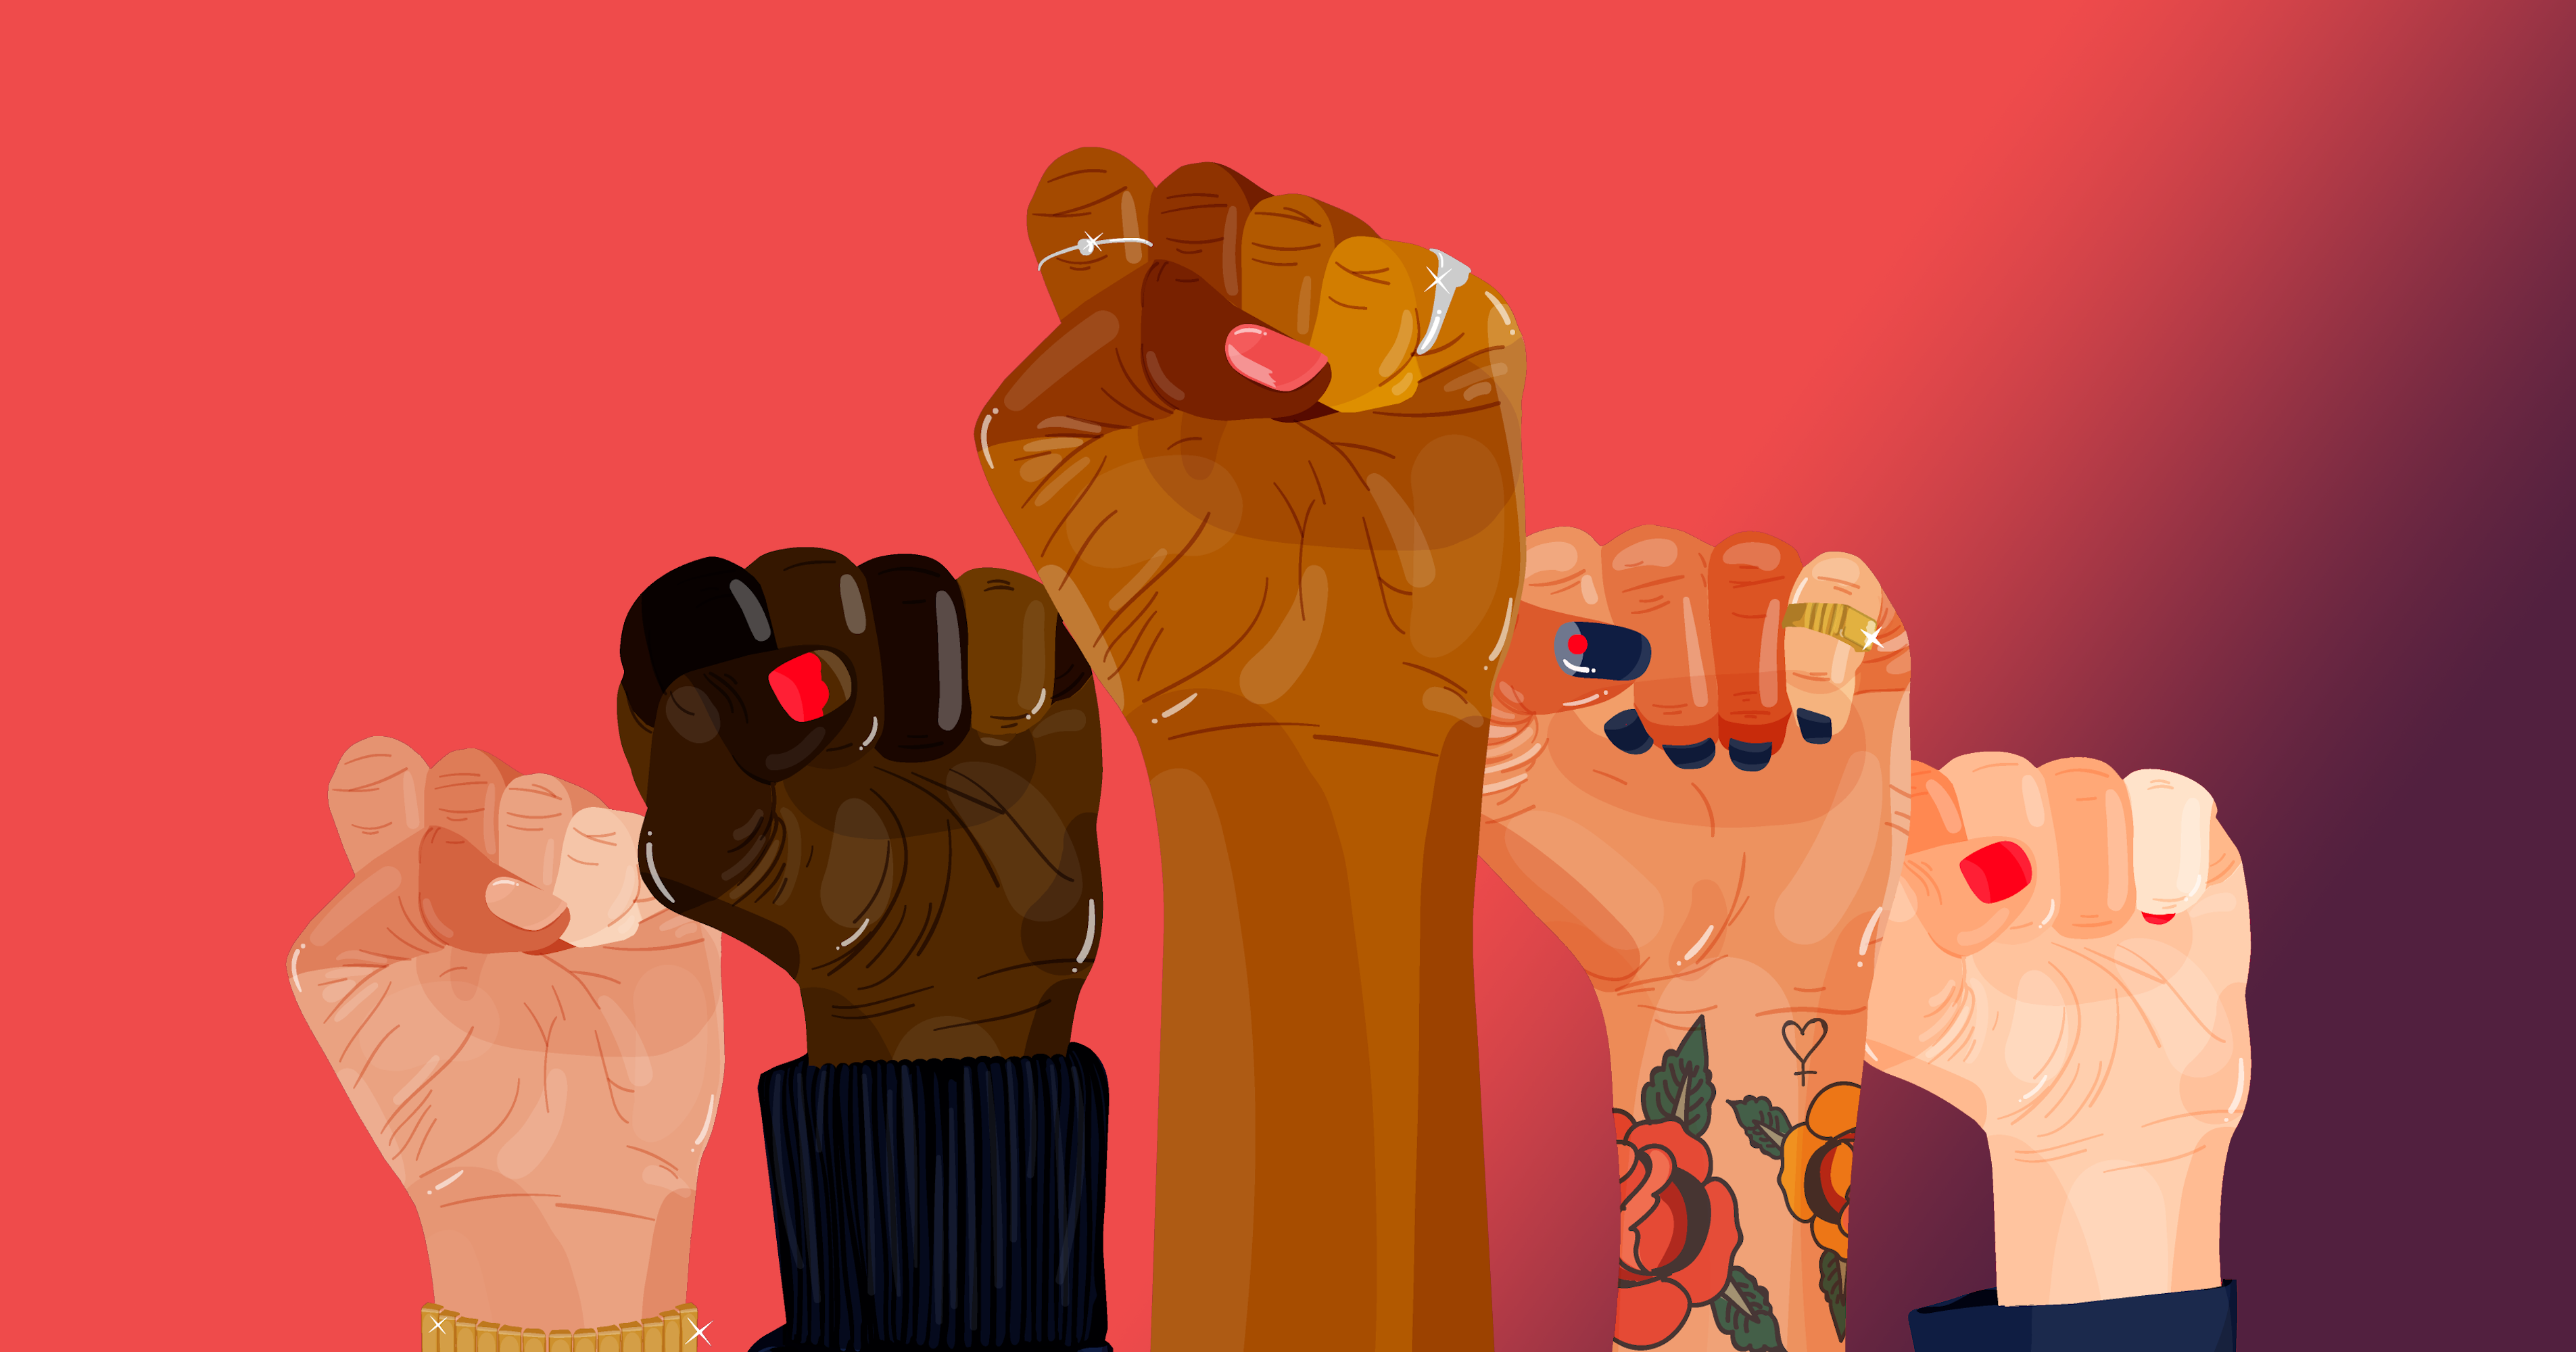 Women's Histoy Month - Empowerment fists